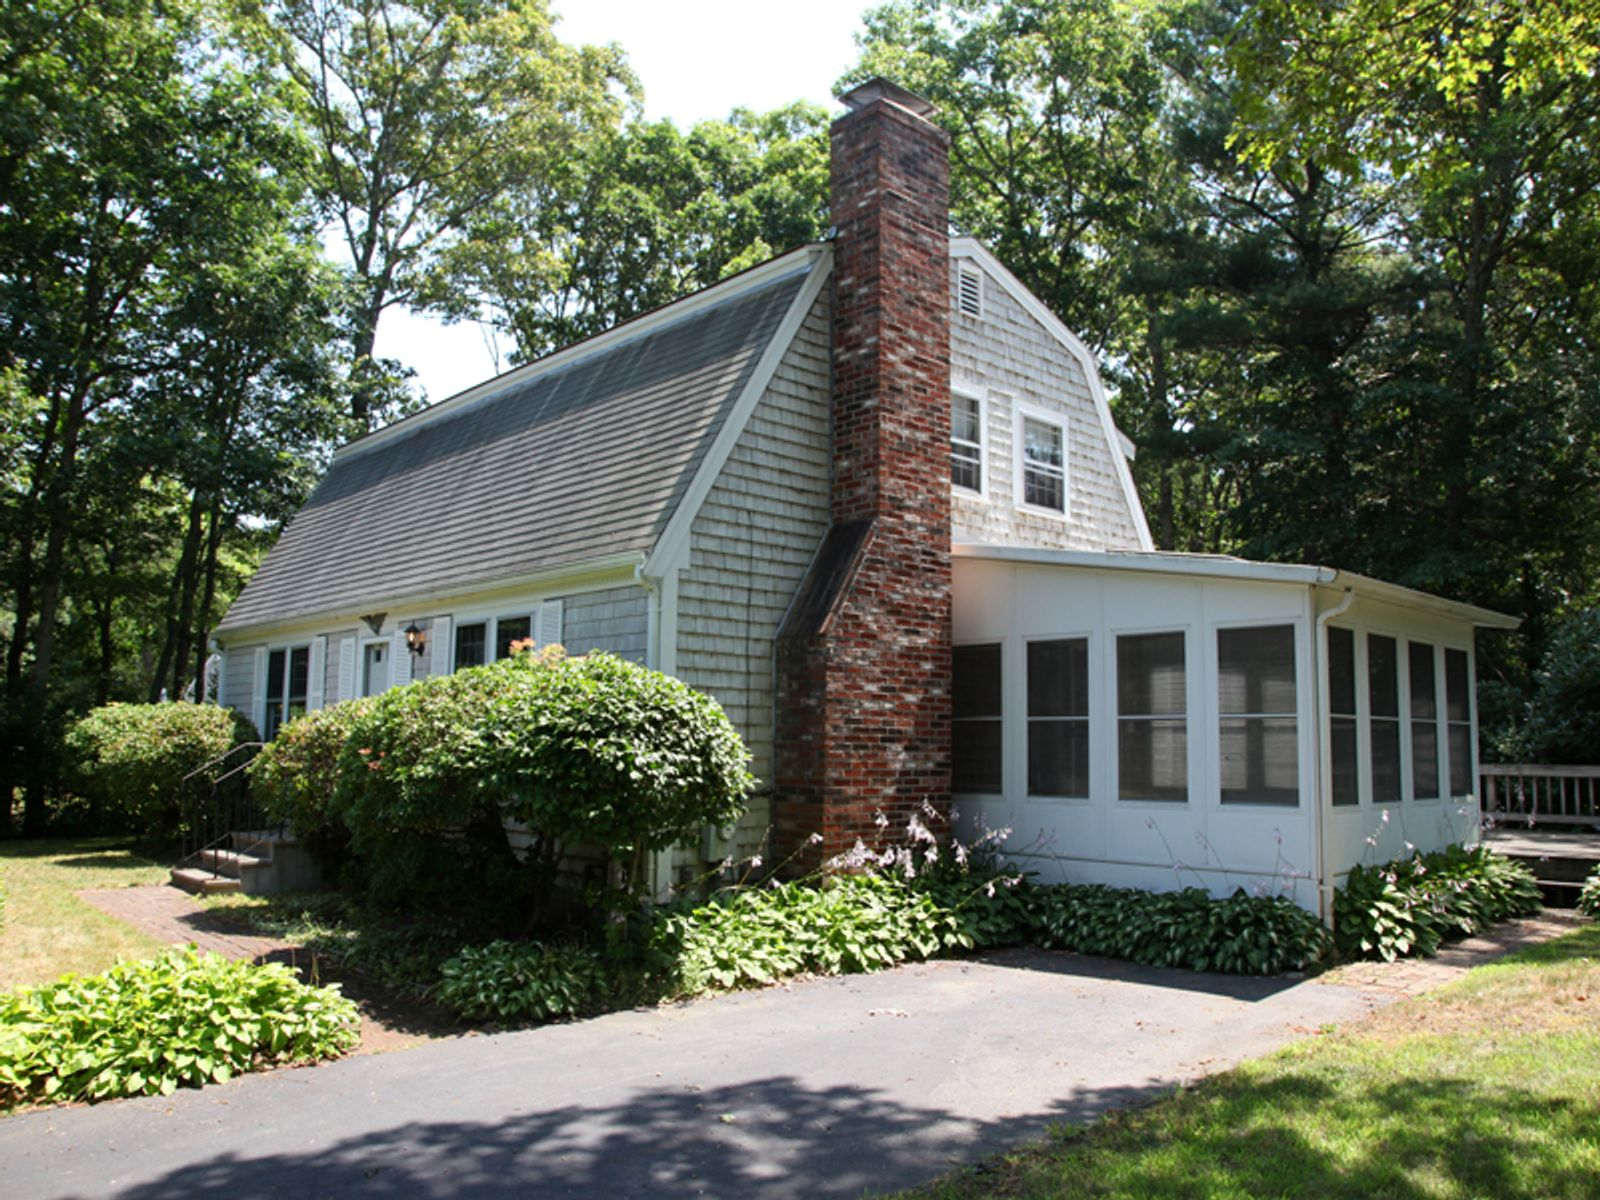 singles in east falmouth Search all available real estate listings currently on the market in east falmouth, ma contact robert paul properties today for more details search all available real estate listings.